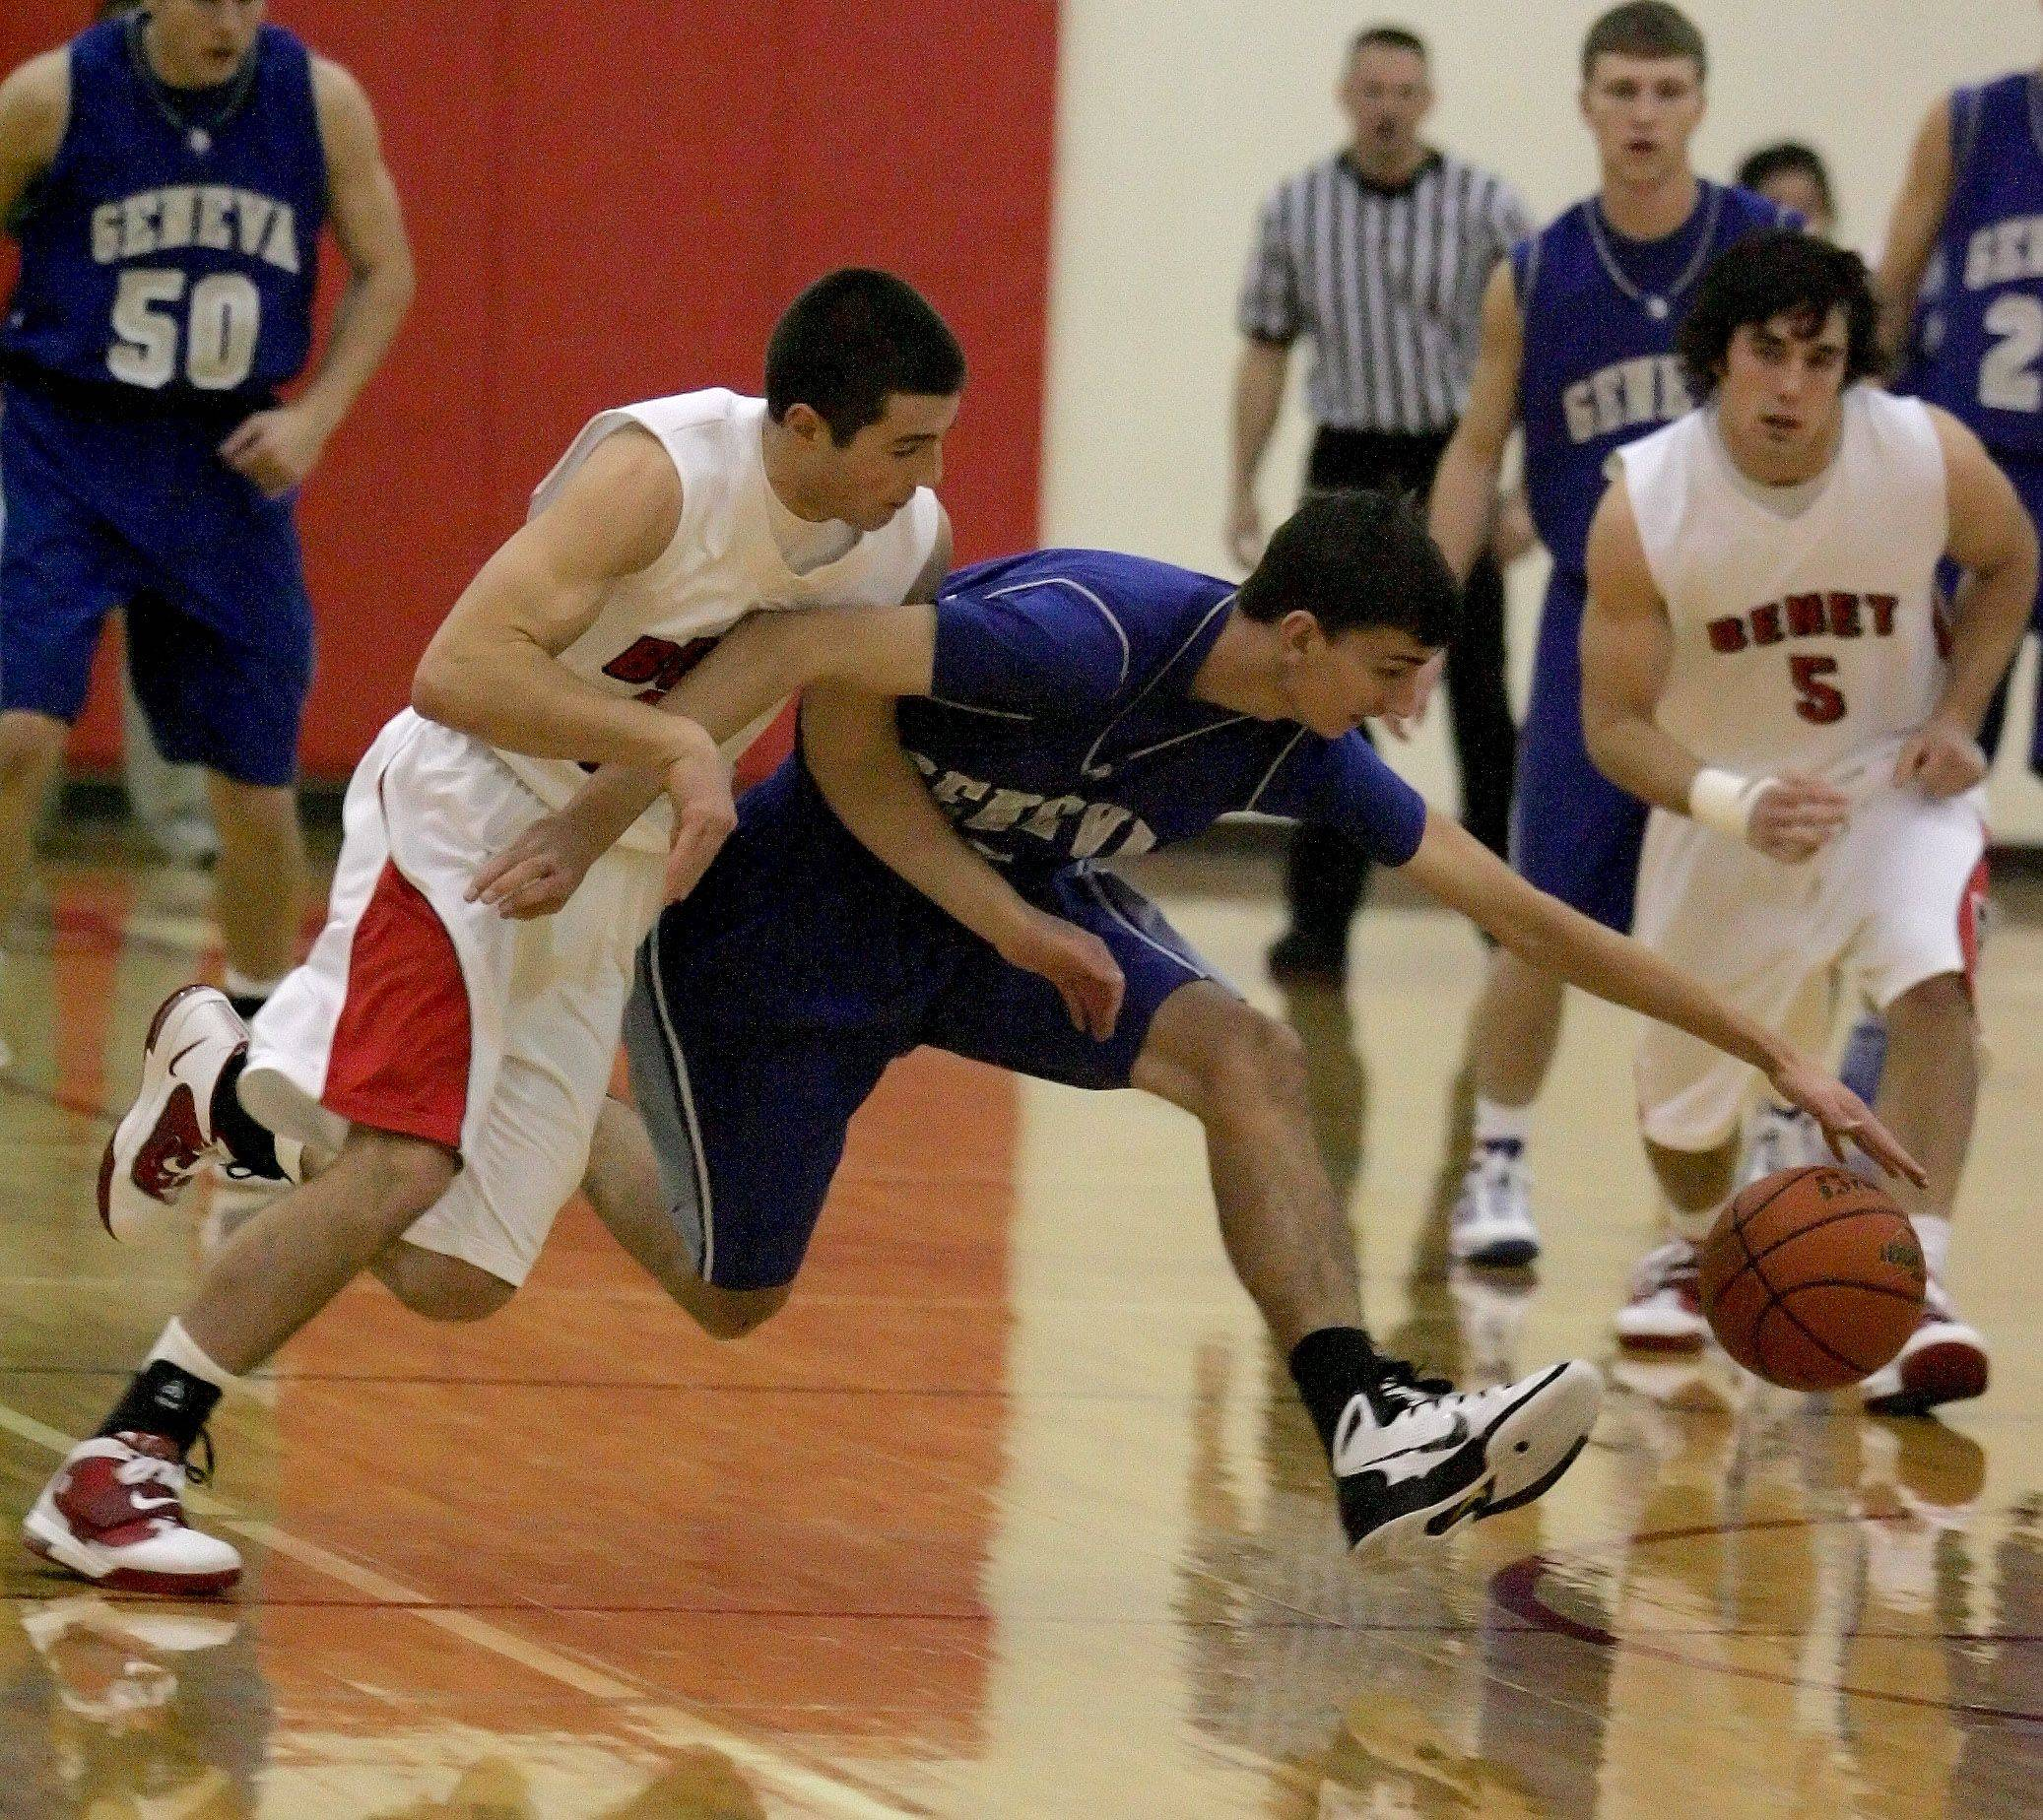 Matt Parisi of Benet, left, and Brendan Leahy, right of Geneva, chase after a loose ball during boys basketball at the Plainfield North Holiday Tournament on Friday.